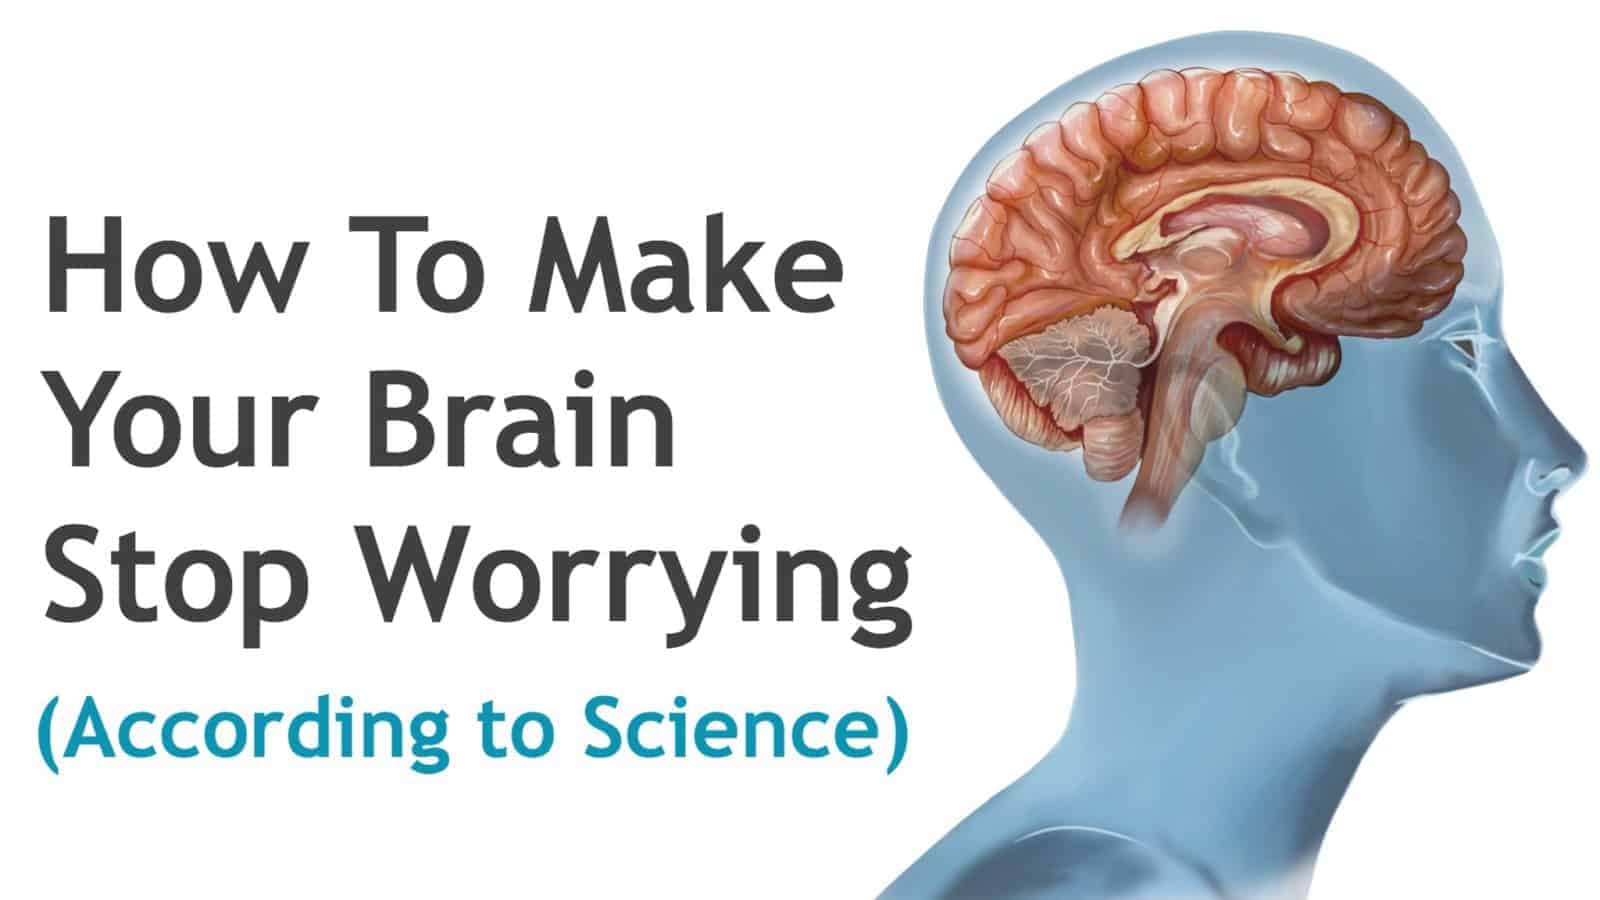 how to stop worrying Everybody worries from time to time, but ruminating on worries isn't healthy here are some ways to shift your thinking – a guide on how to stop worrying.